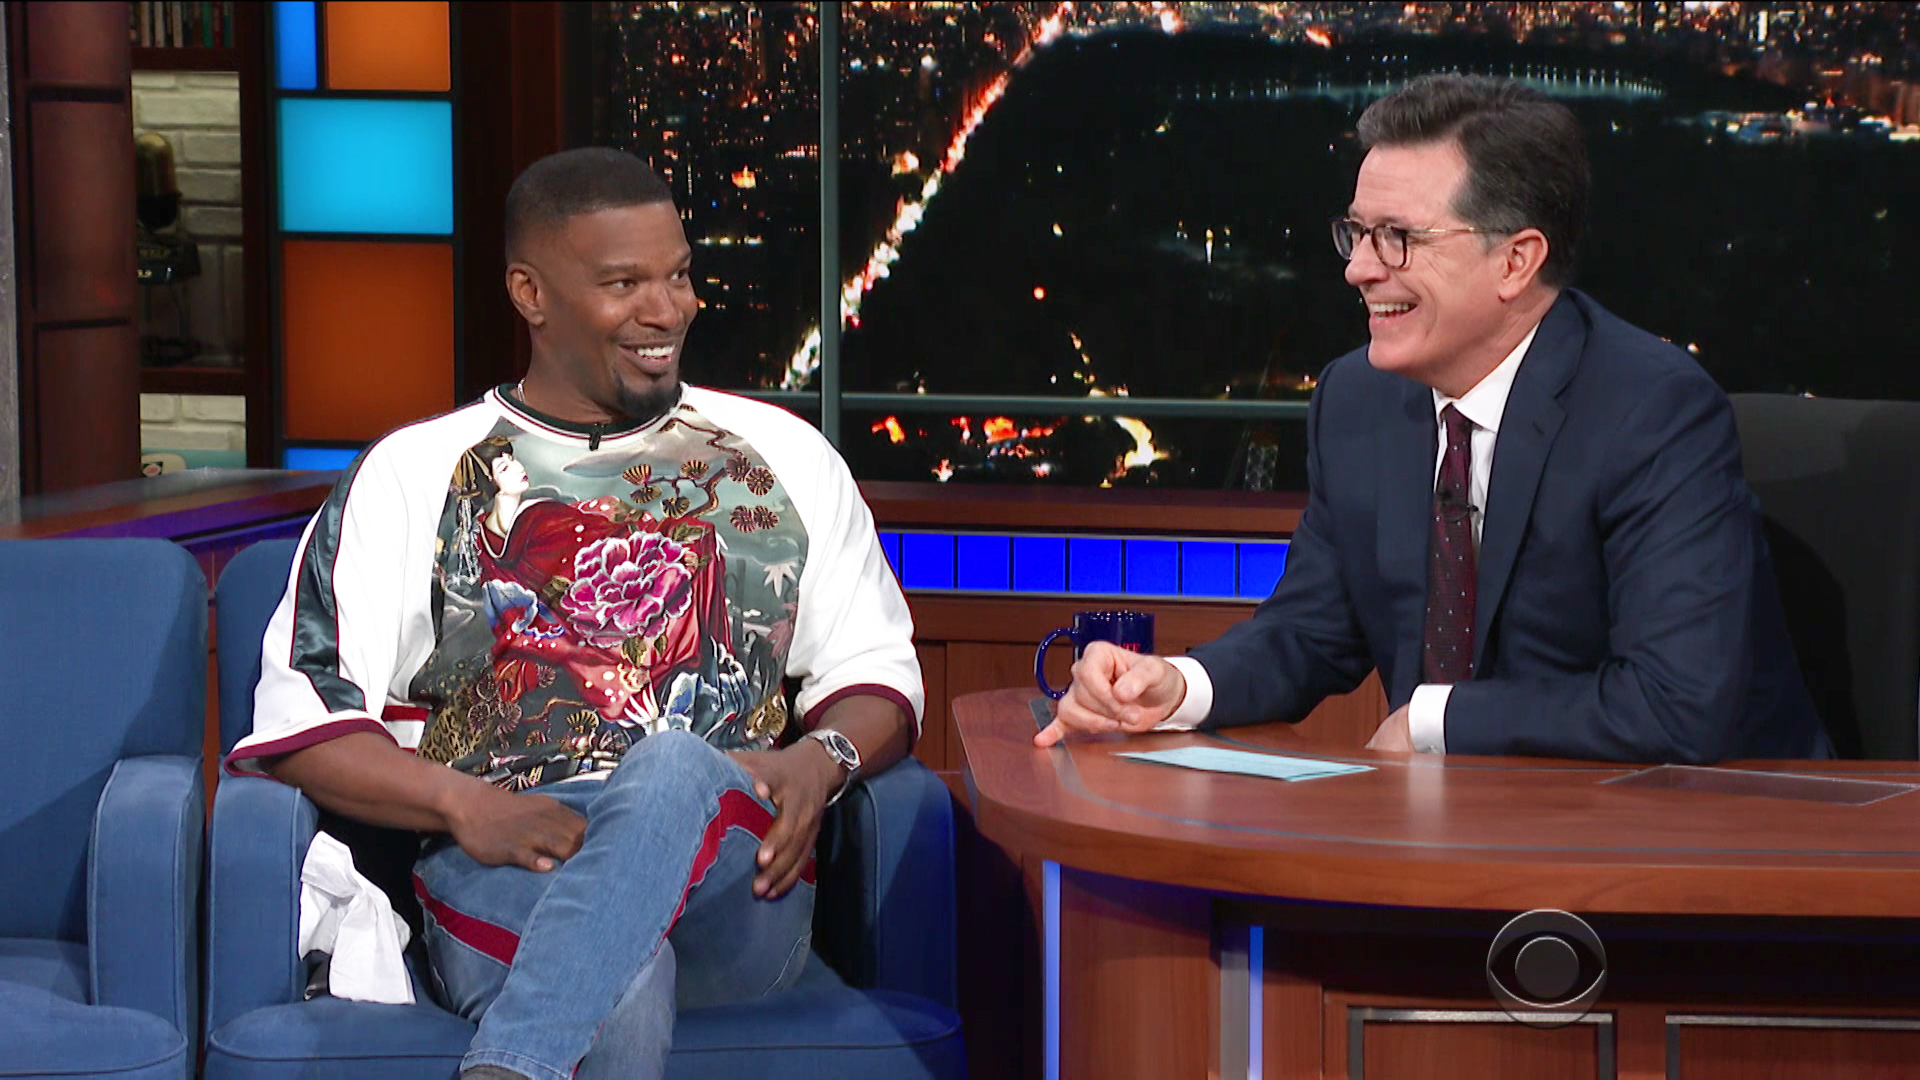 Watch The Late Show with Stephen Colbert Season 3 Episode 140: 5/15/18  (Jamie Foxx, Nathaniel Rateliff & The Night Sweats) - Full show on CBS All  Access